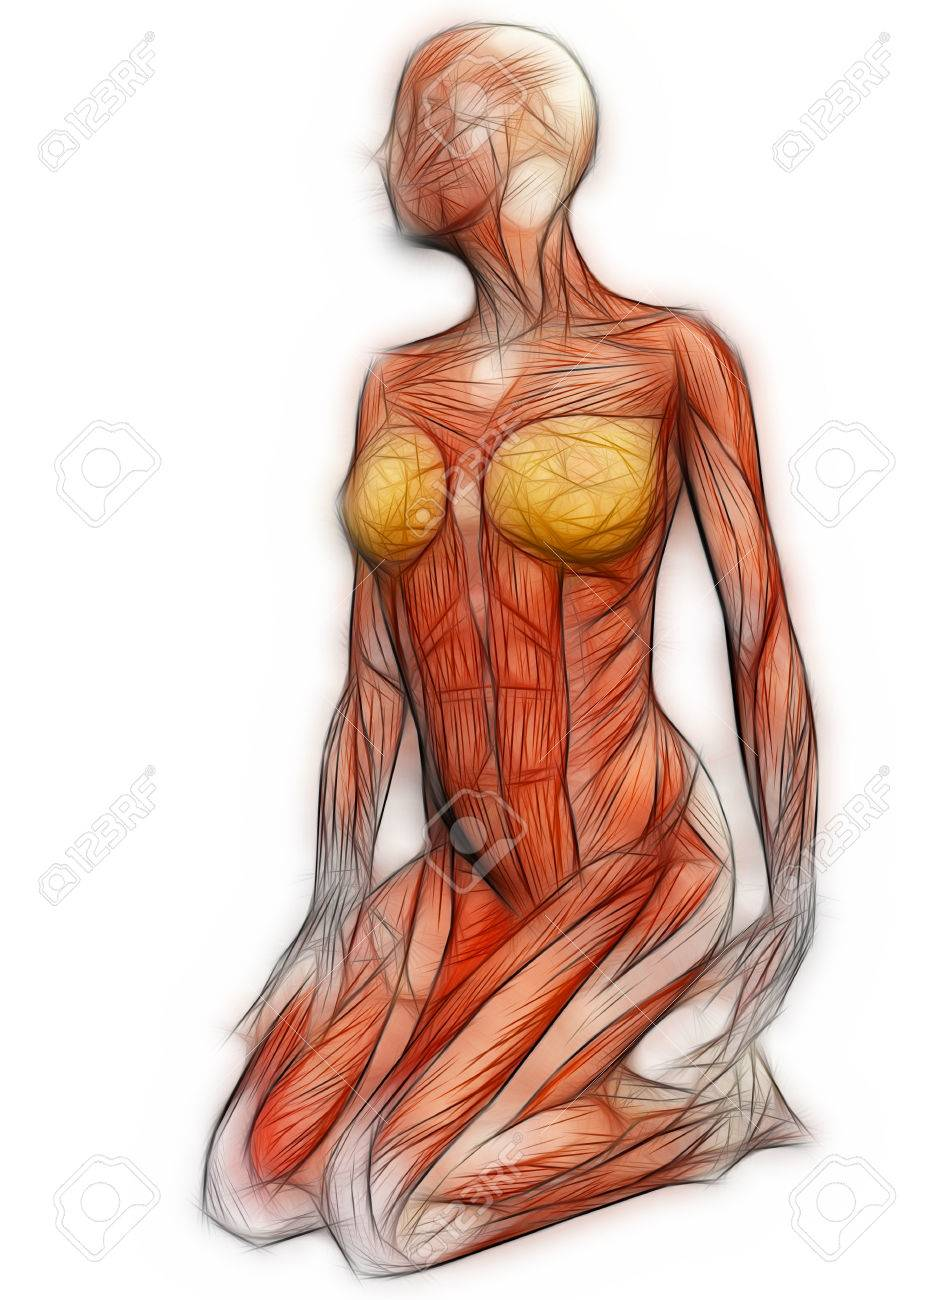 Human Anatomy - Female Muscles Made In 3d Software Stock Photo ...